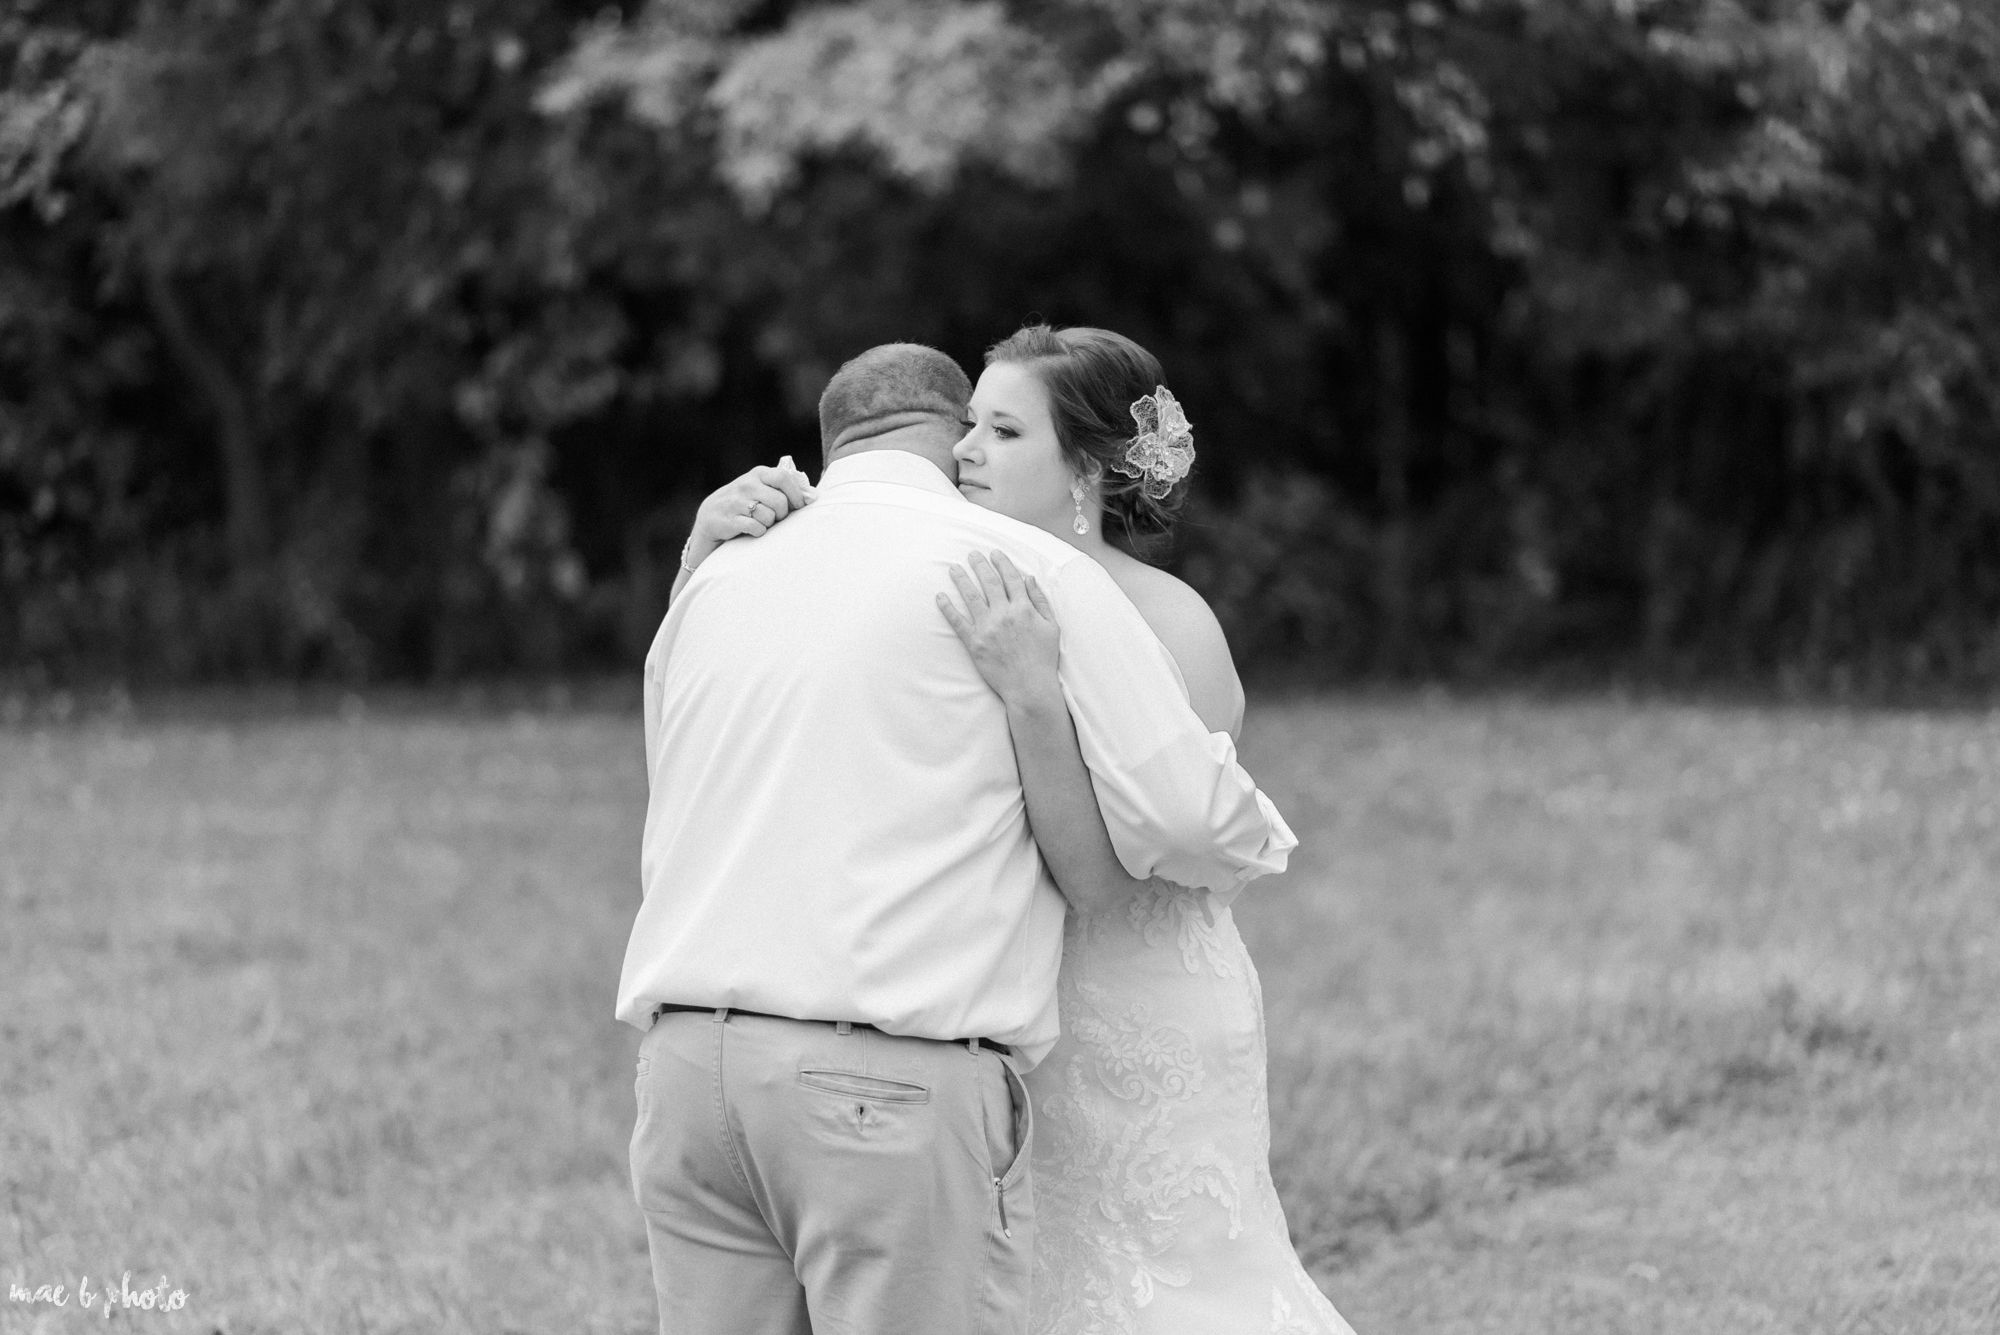 Sarah & Dustin's Intimate Fall Barn Winery Wedding at Hartford Hill Winery in Hartford, Ohio Photographed by Mae B Photo-1.jpg